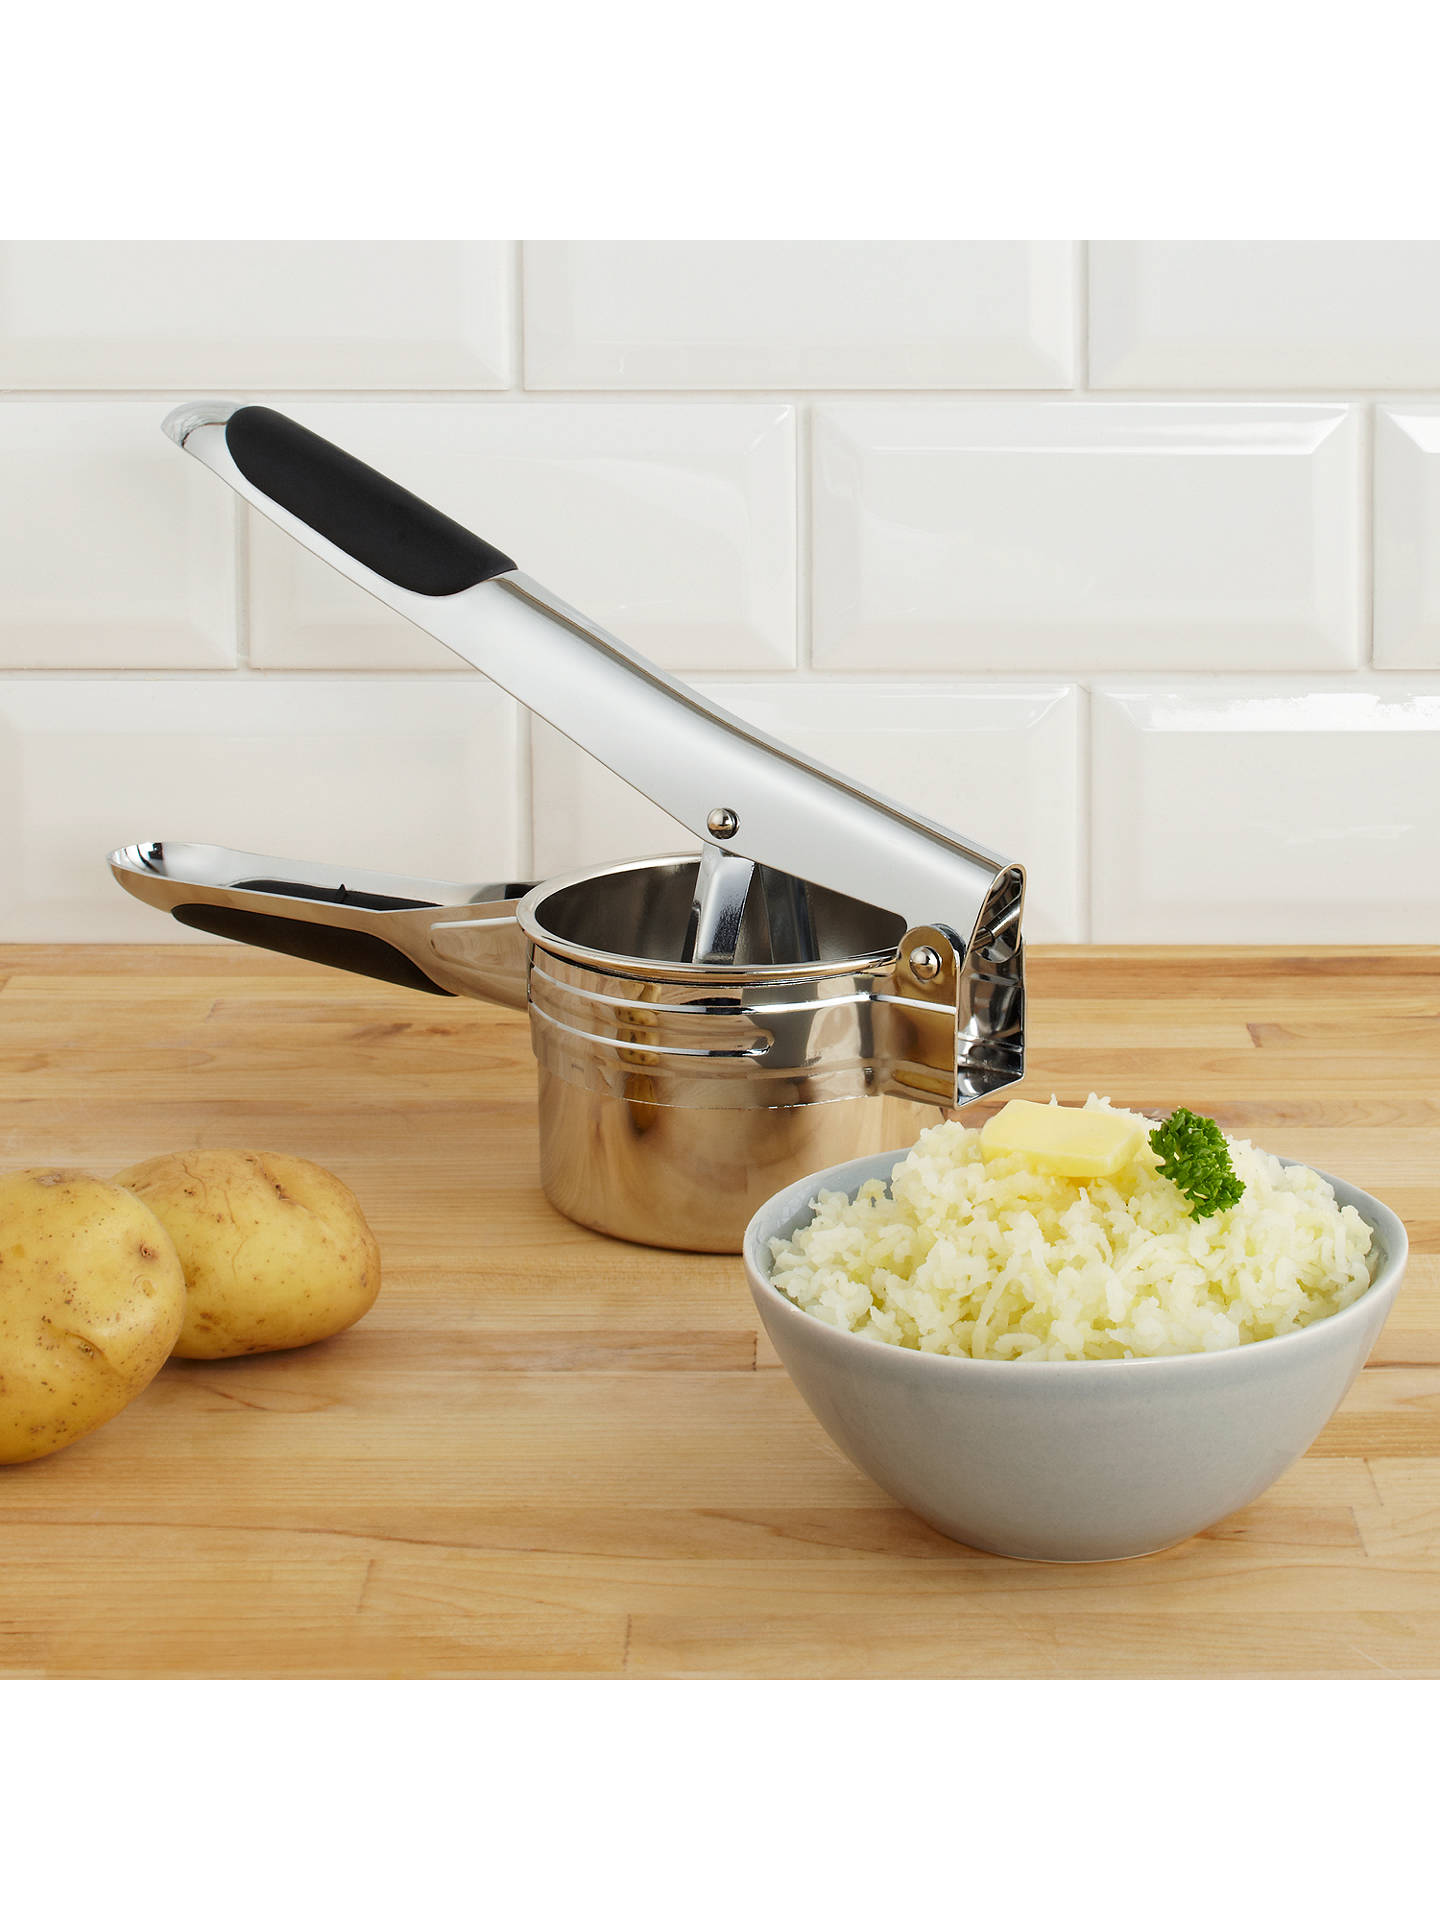 BuyJohn Lewis & Partners Potato Ricer Online at johnlewis.com